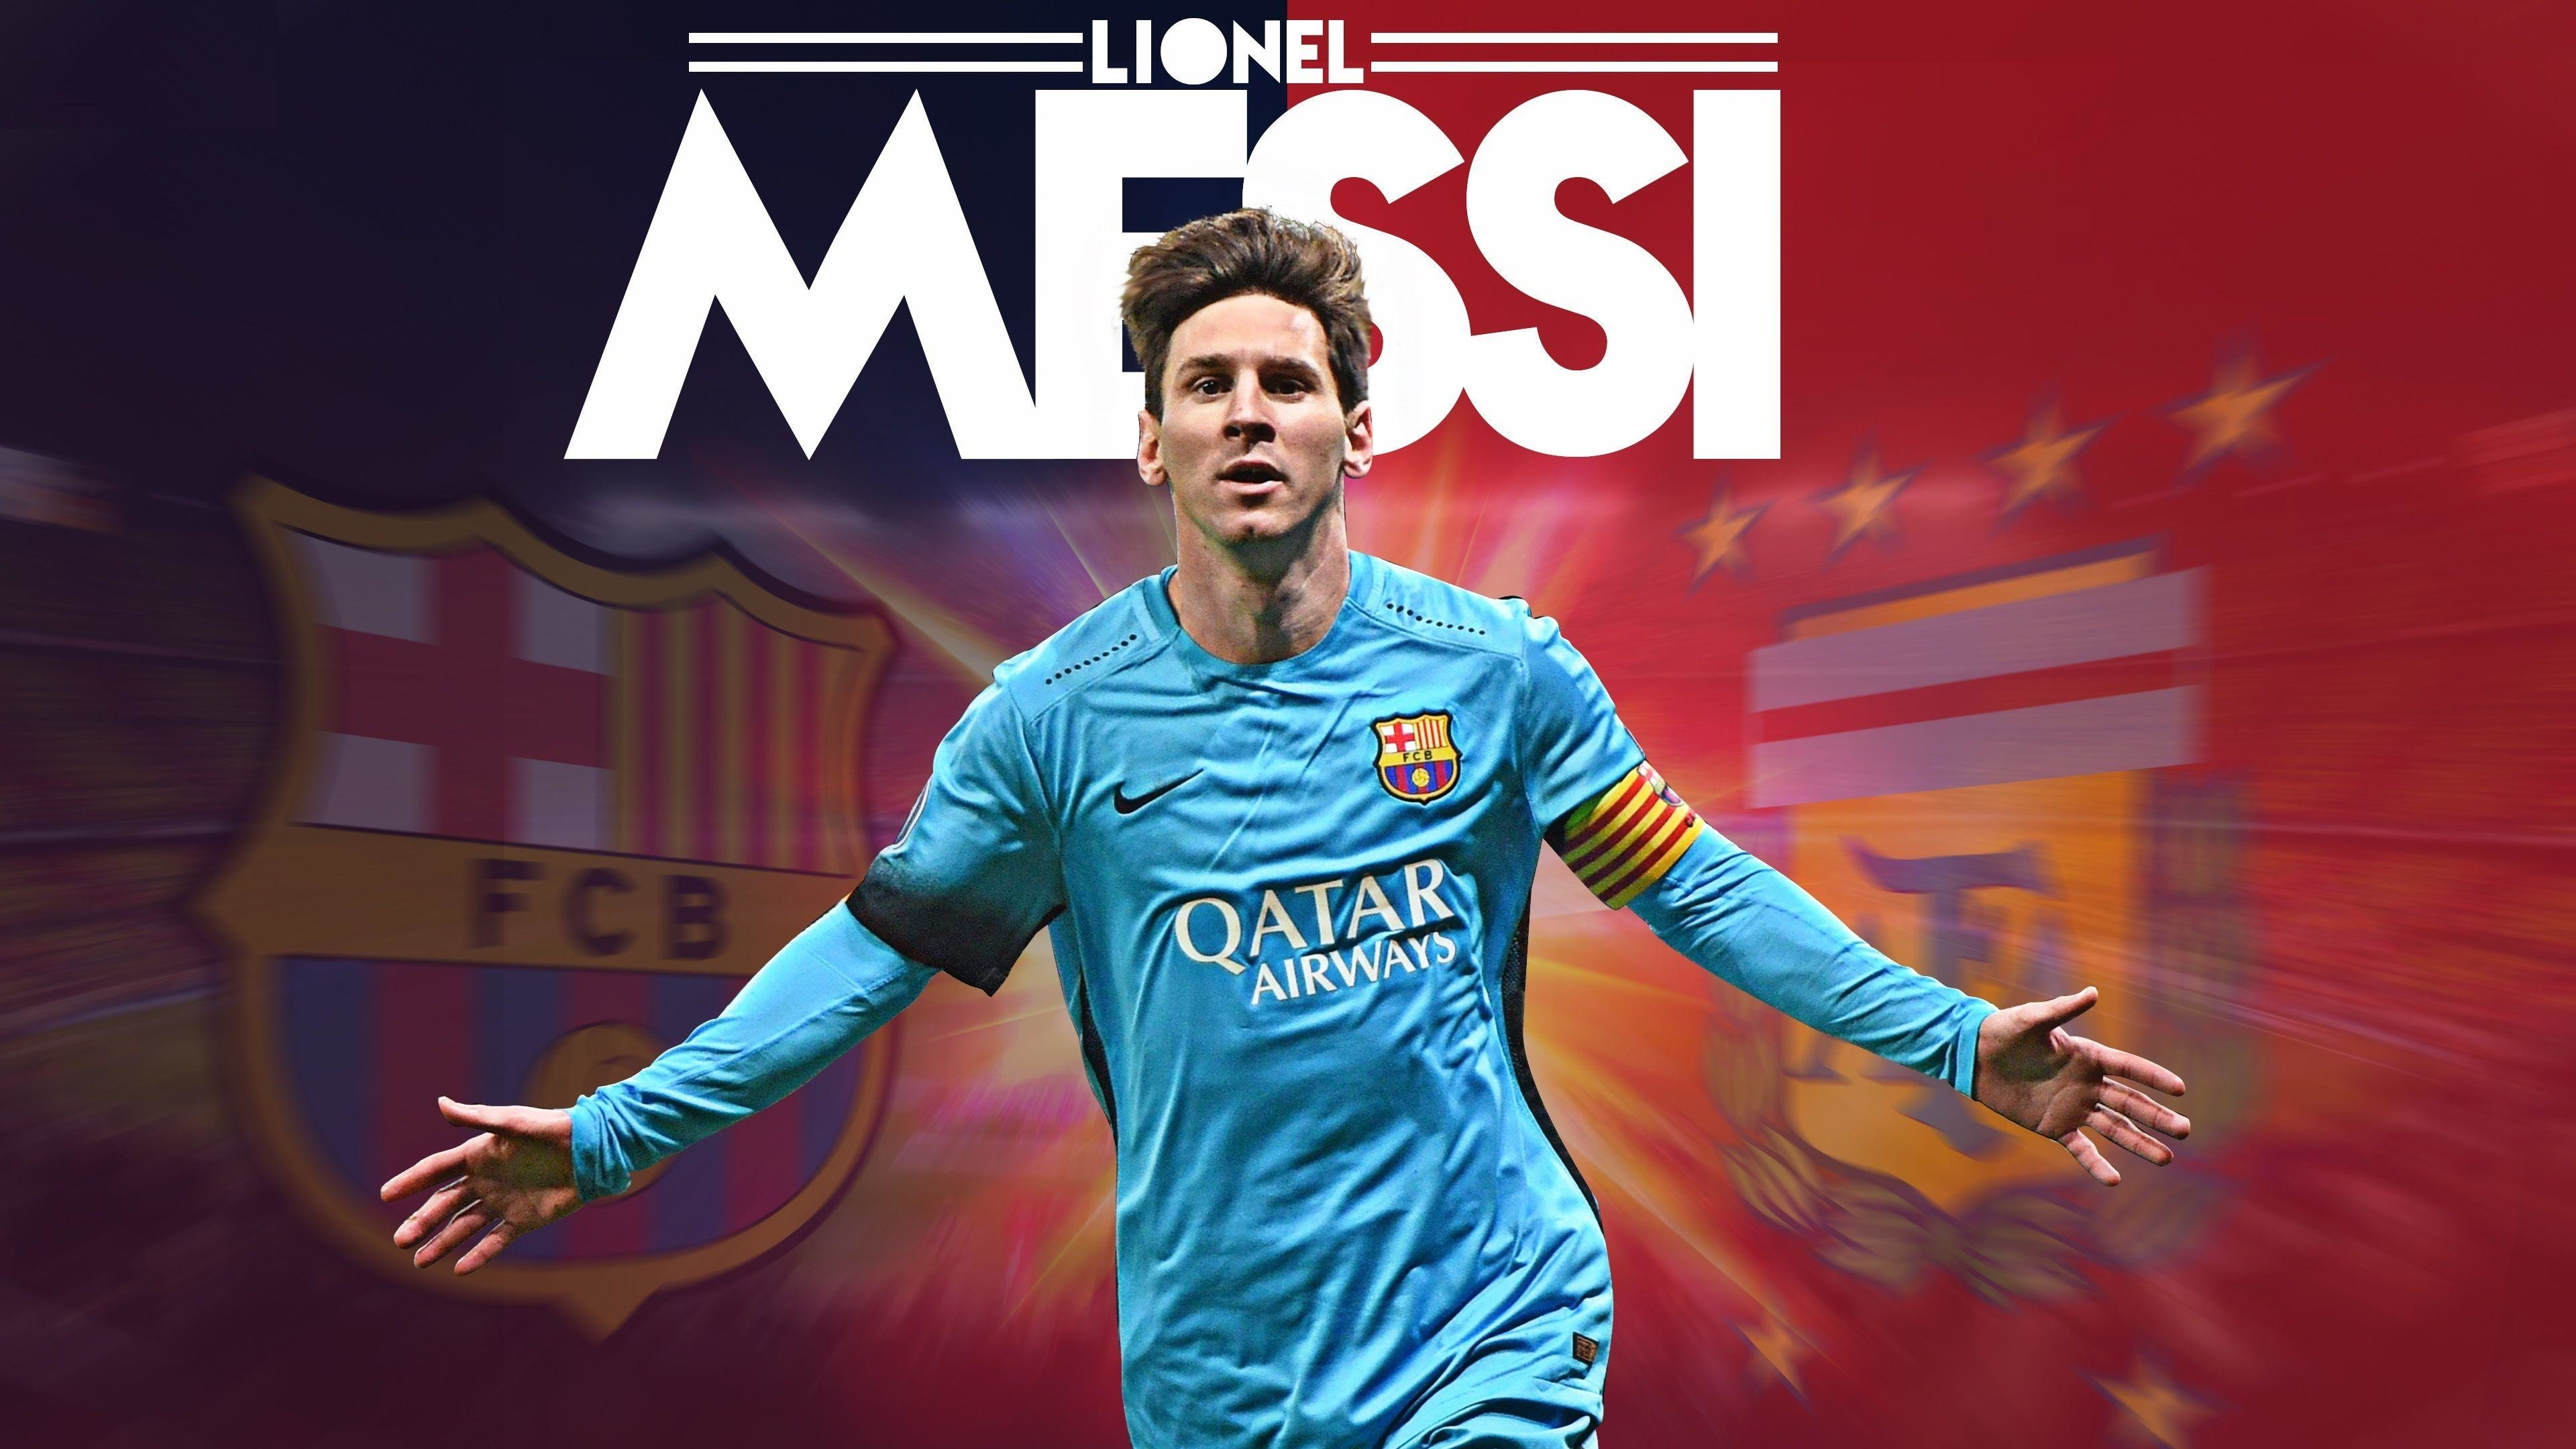 Lionel Messi Fcb Hd 4k Wallpapers Hd Wallpapers